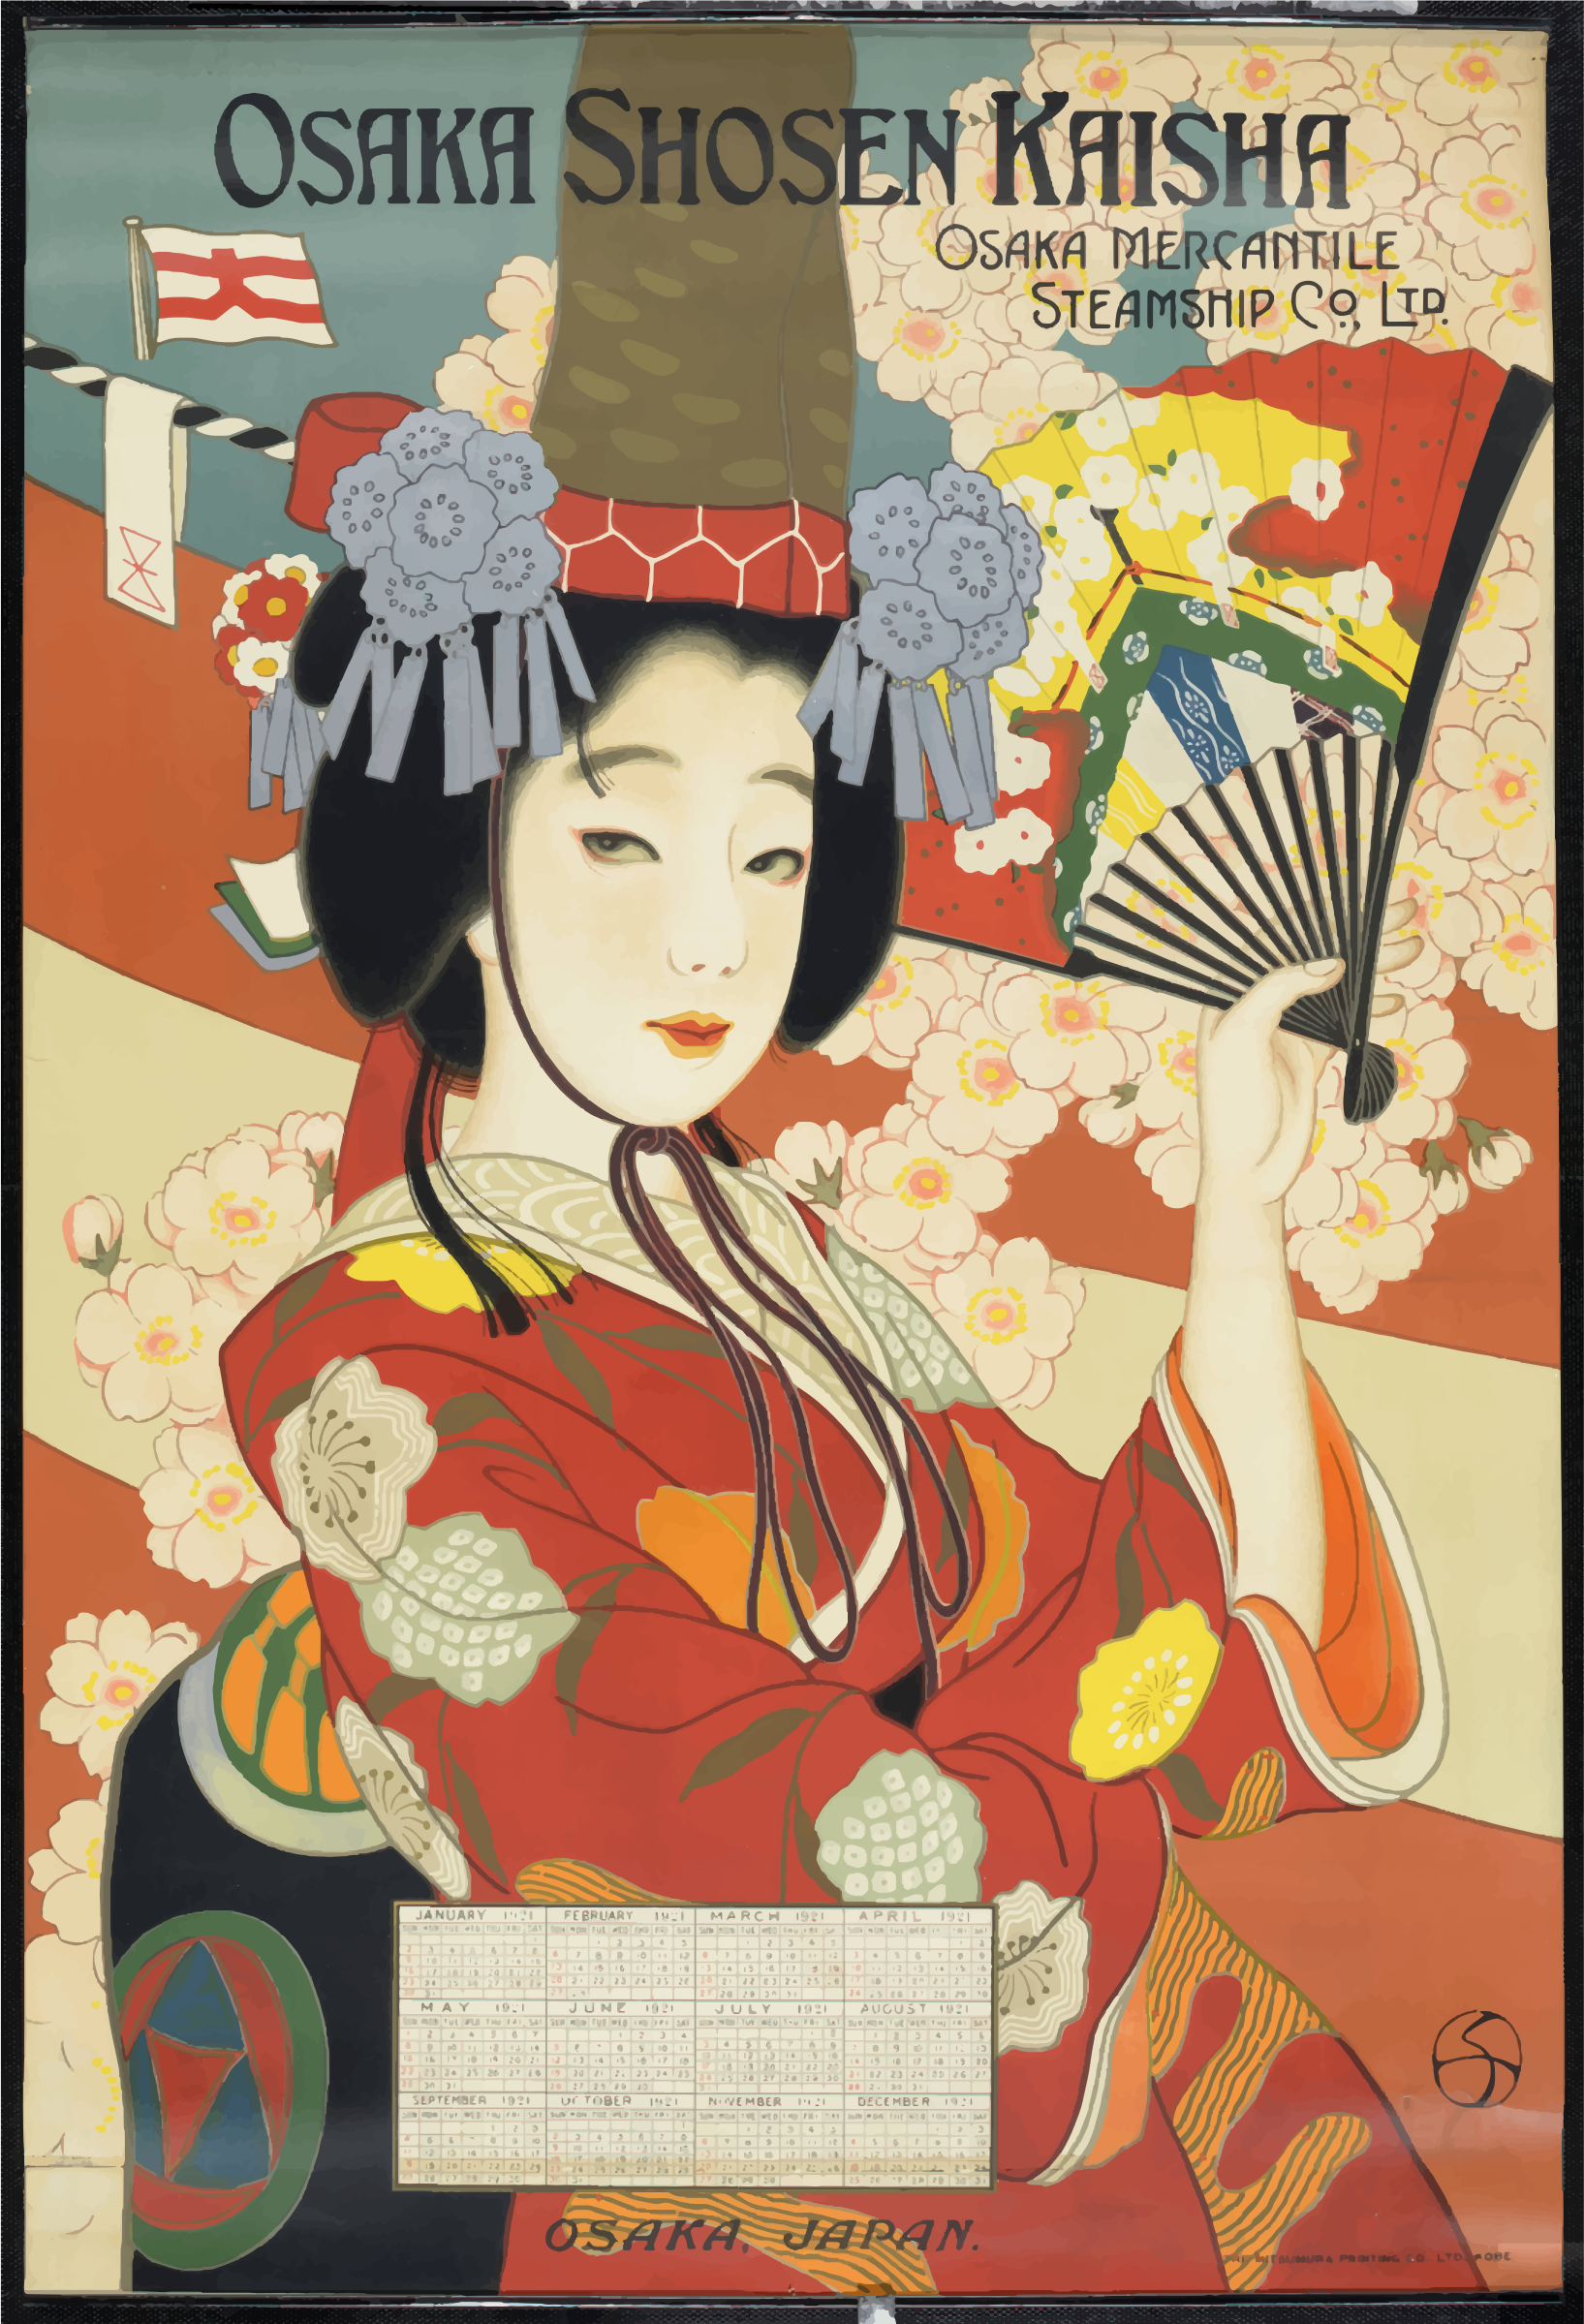 Vintage Travel Poster Osaka Japan 2 by GDJ